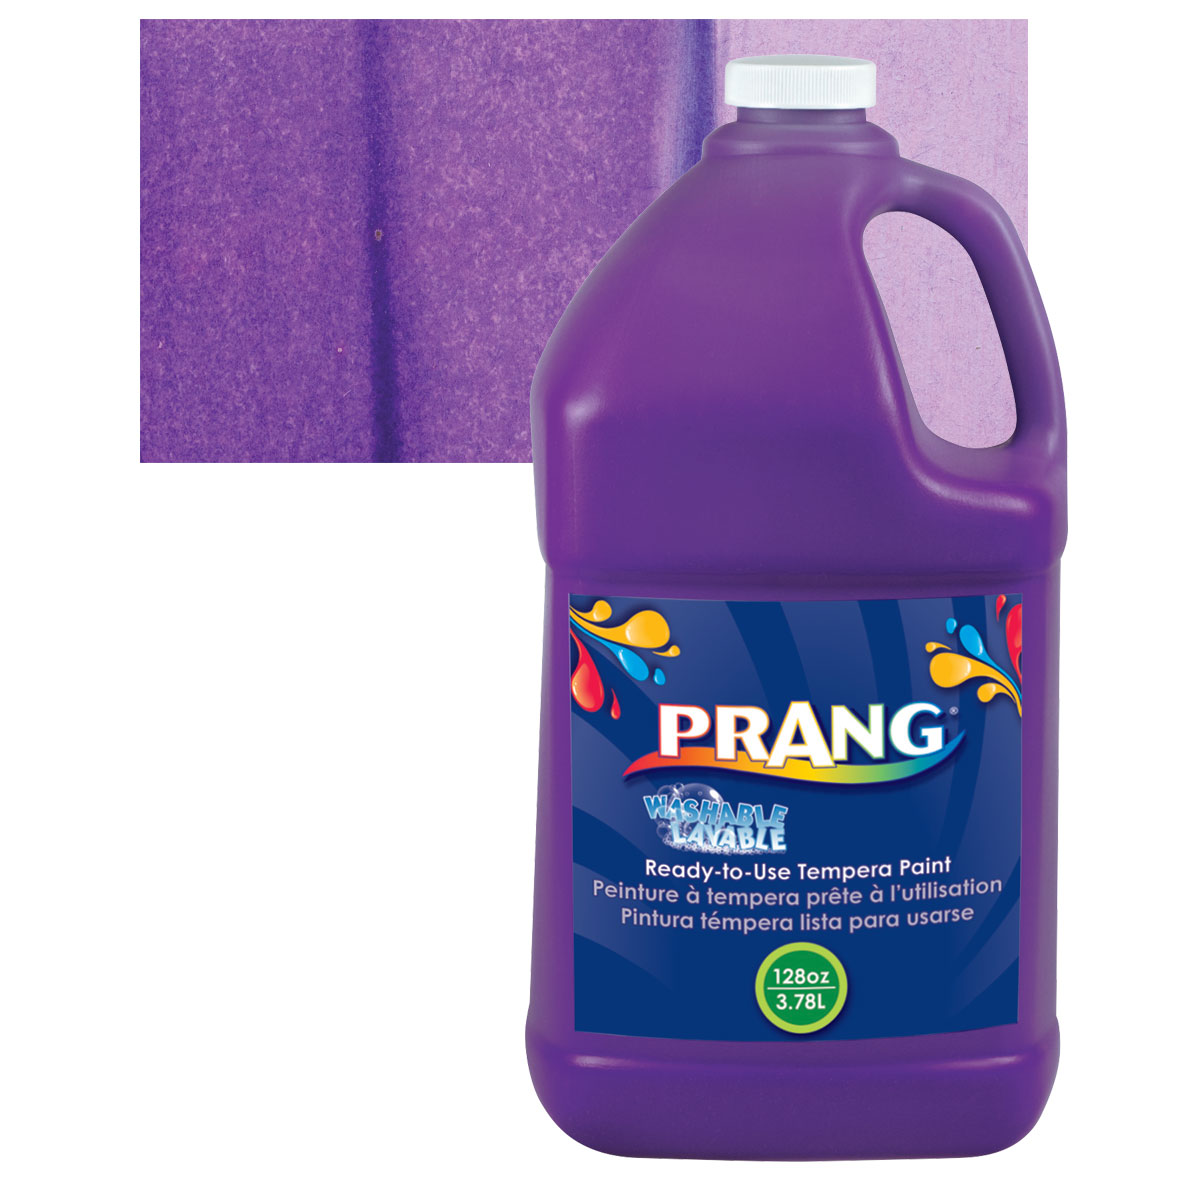 Prang Ready-To-Use Washable Tempera Paint - Violet, Gallon